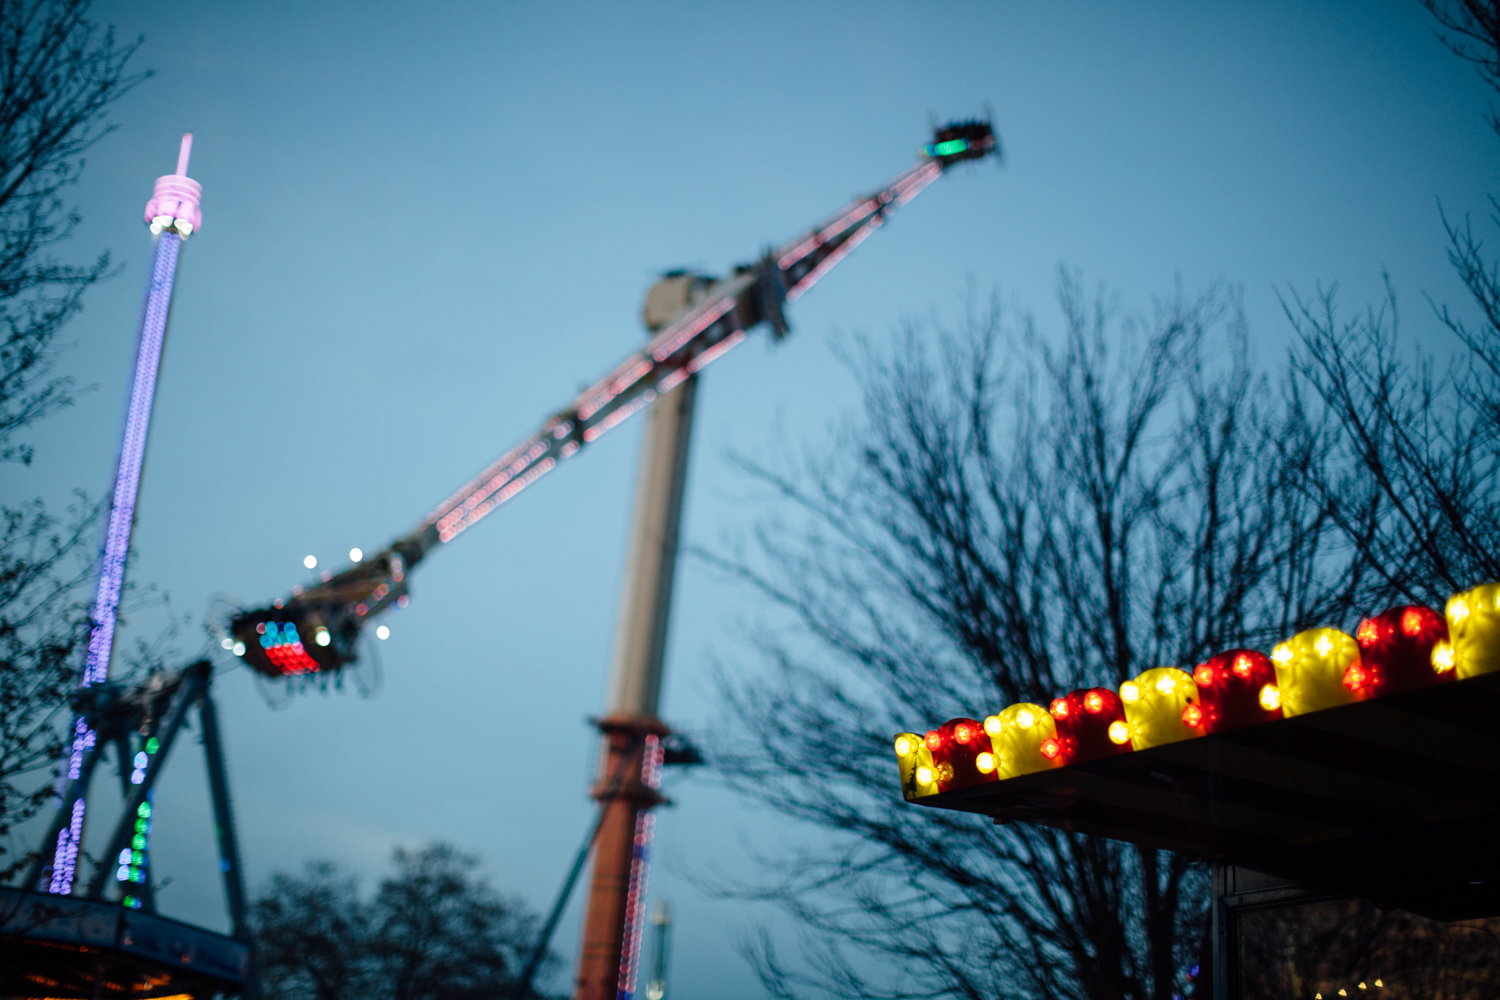 A food market stand's lights and attraction rides.